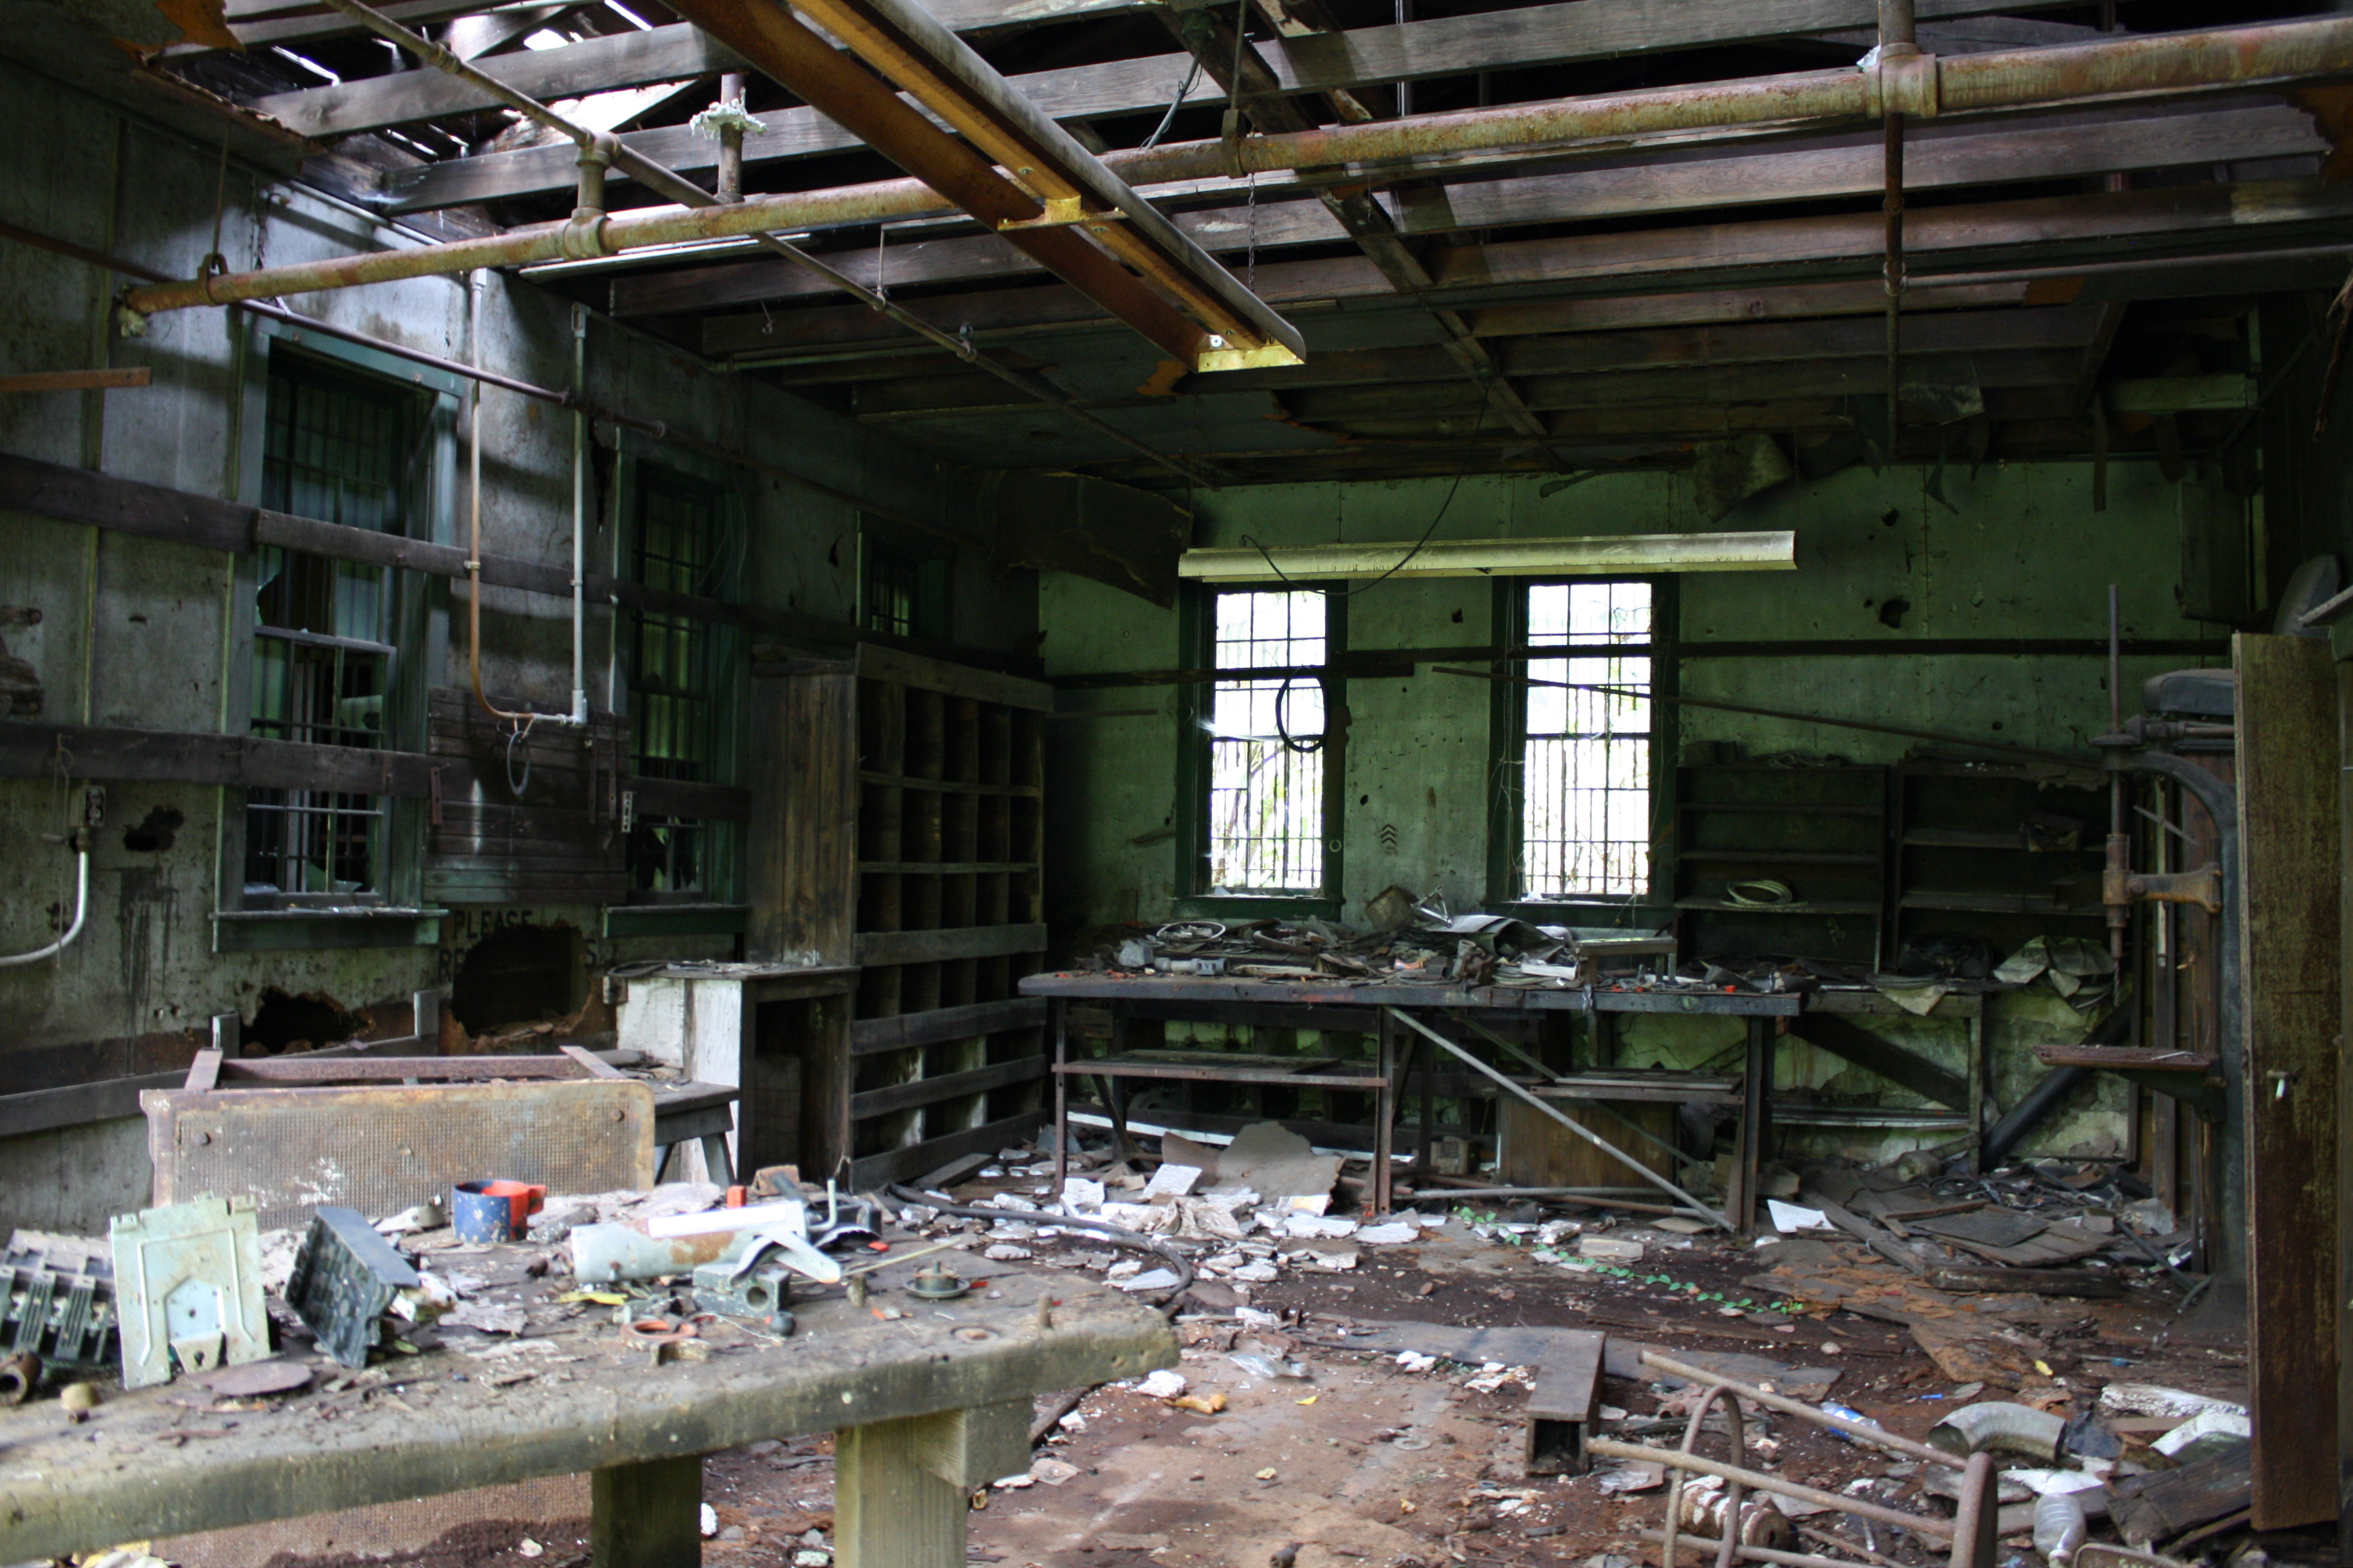 Is love to explore abandoned places like this BACK TO WHERE IT